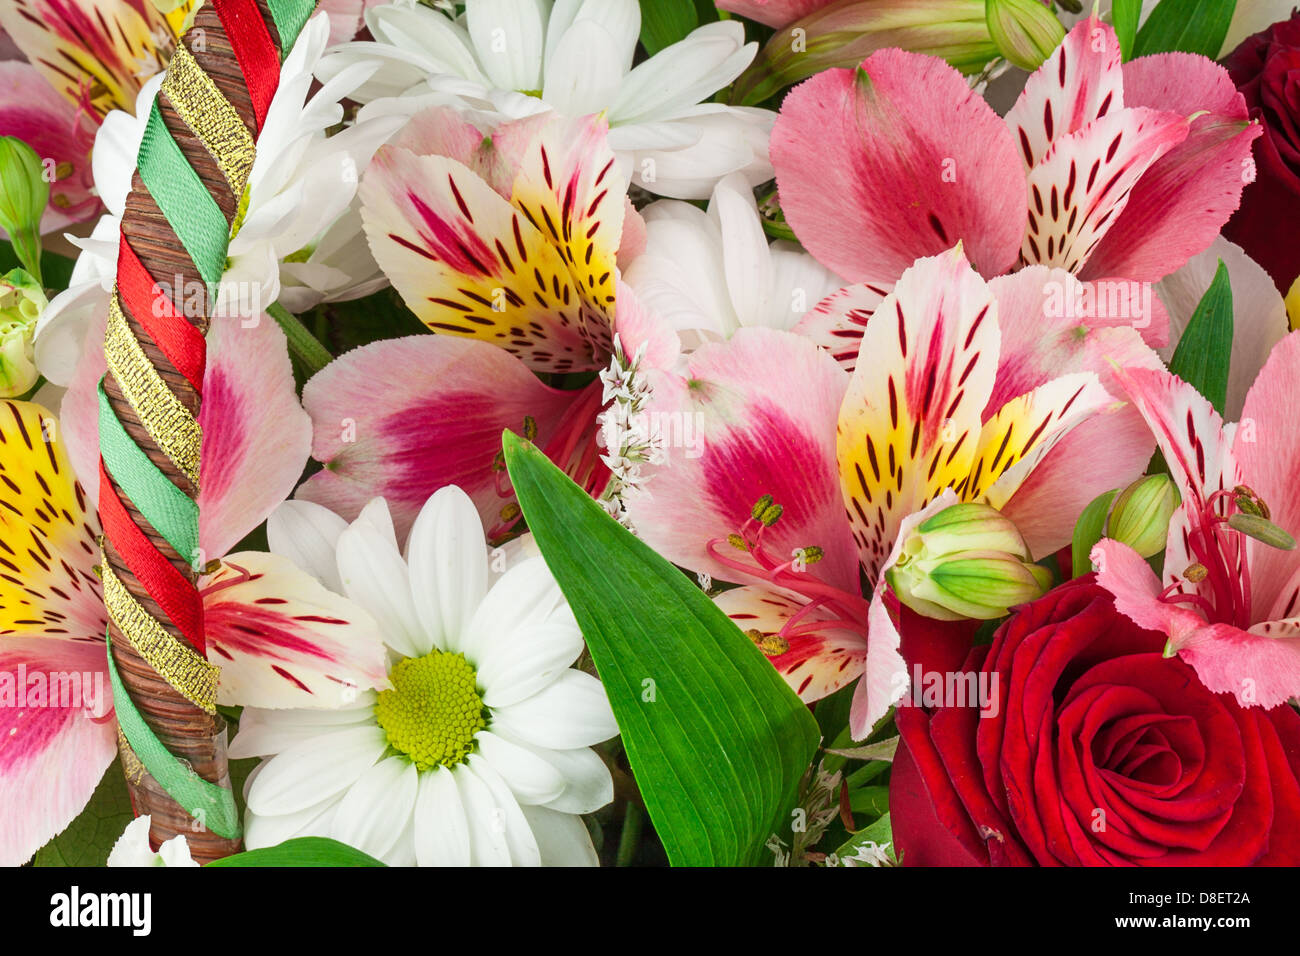 Misc of flowers. Lyly, daisy and roses. - Stock Image